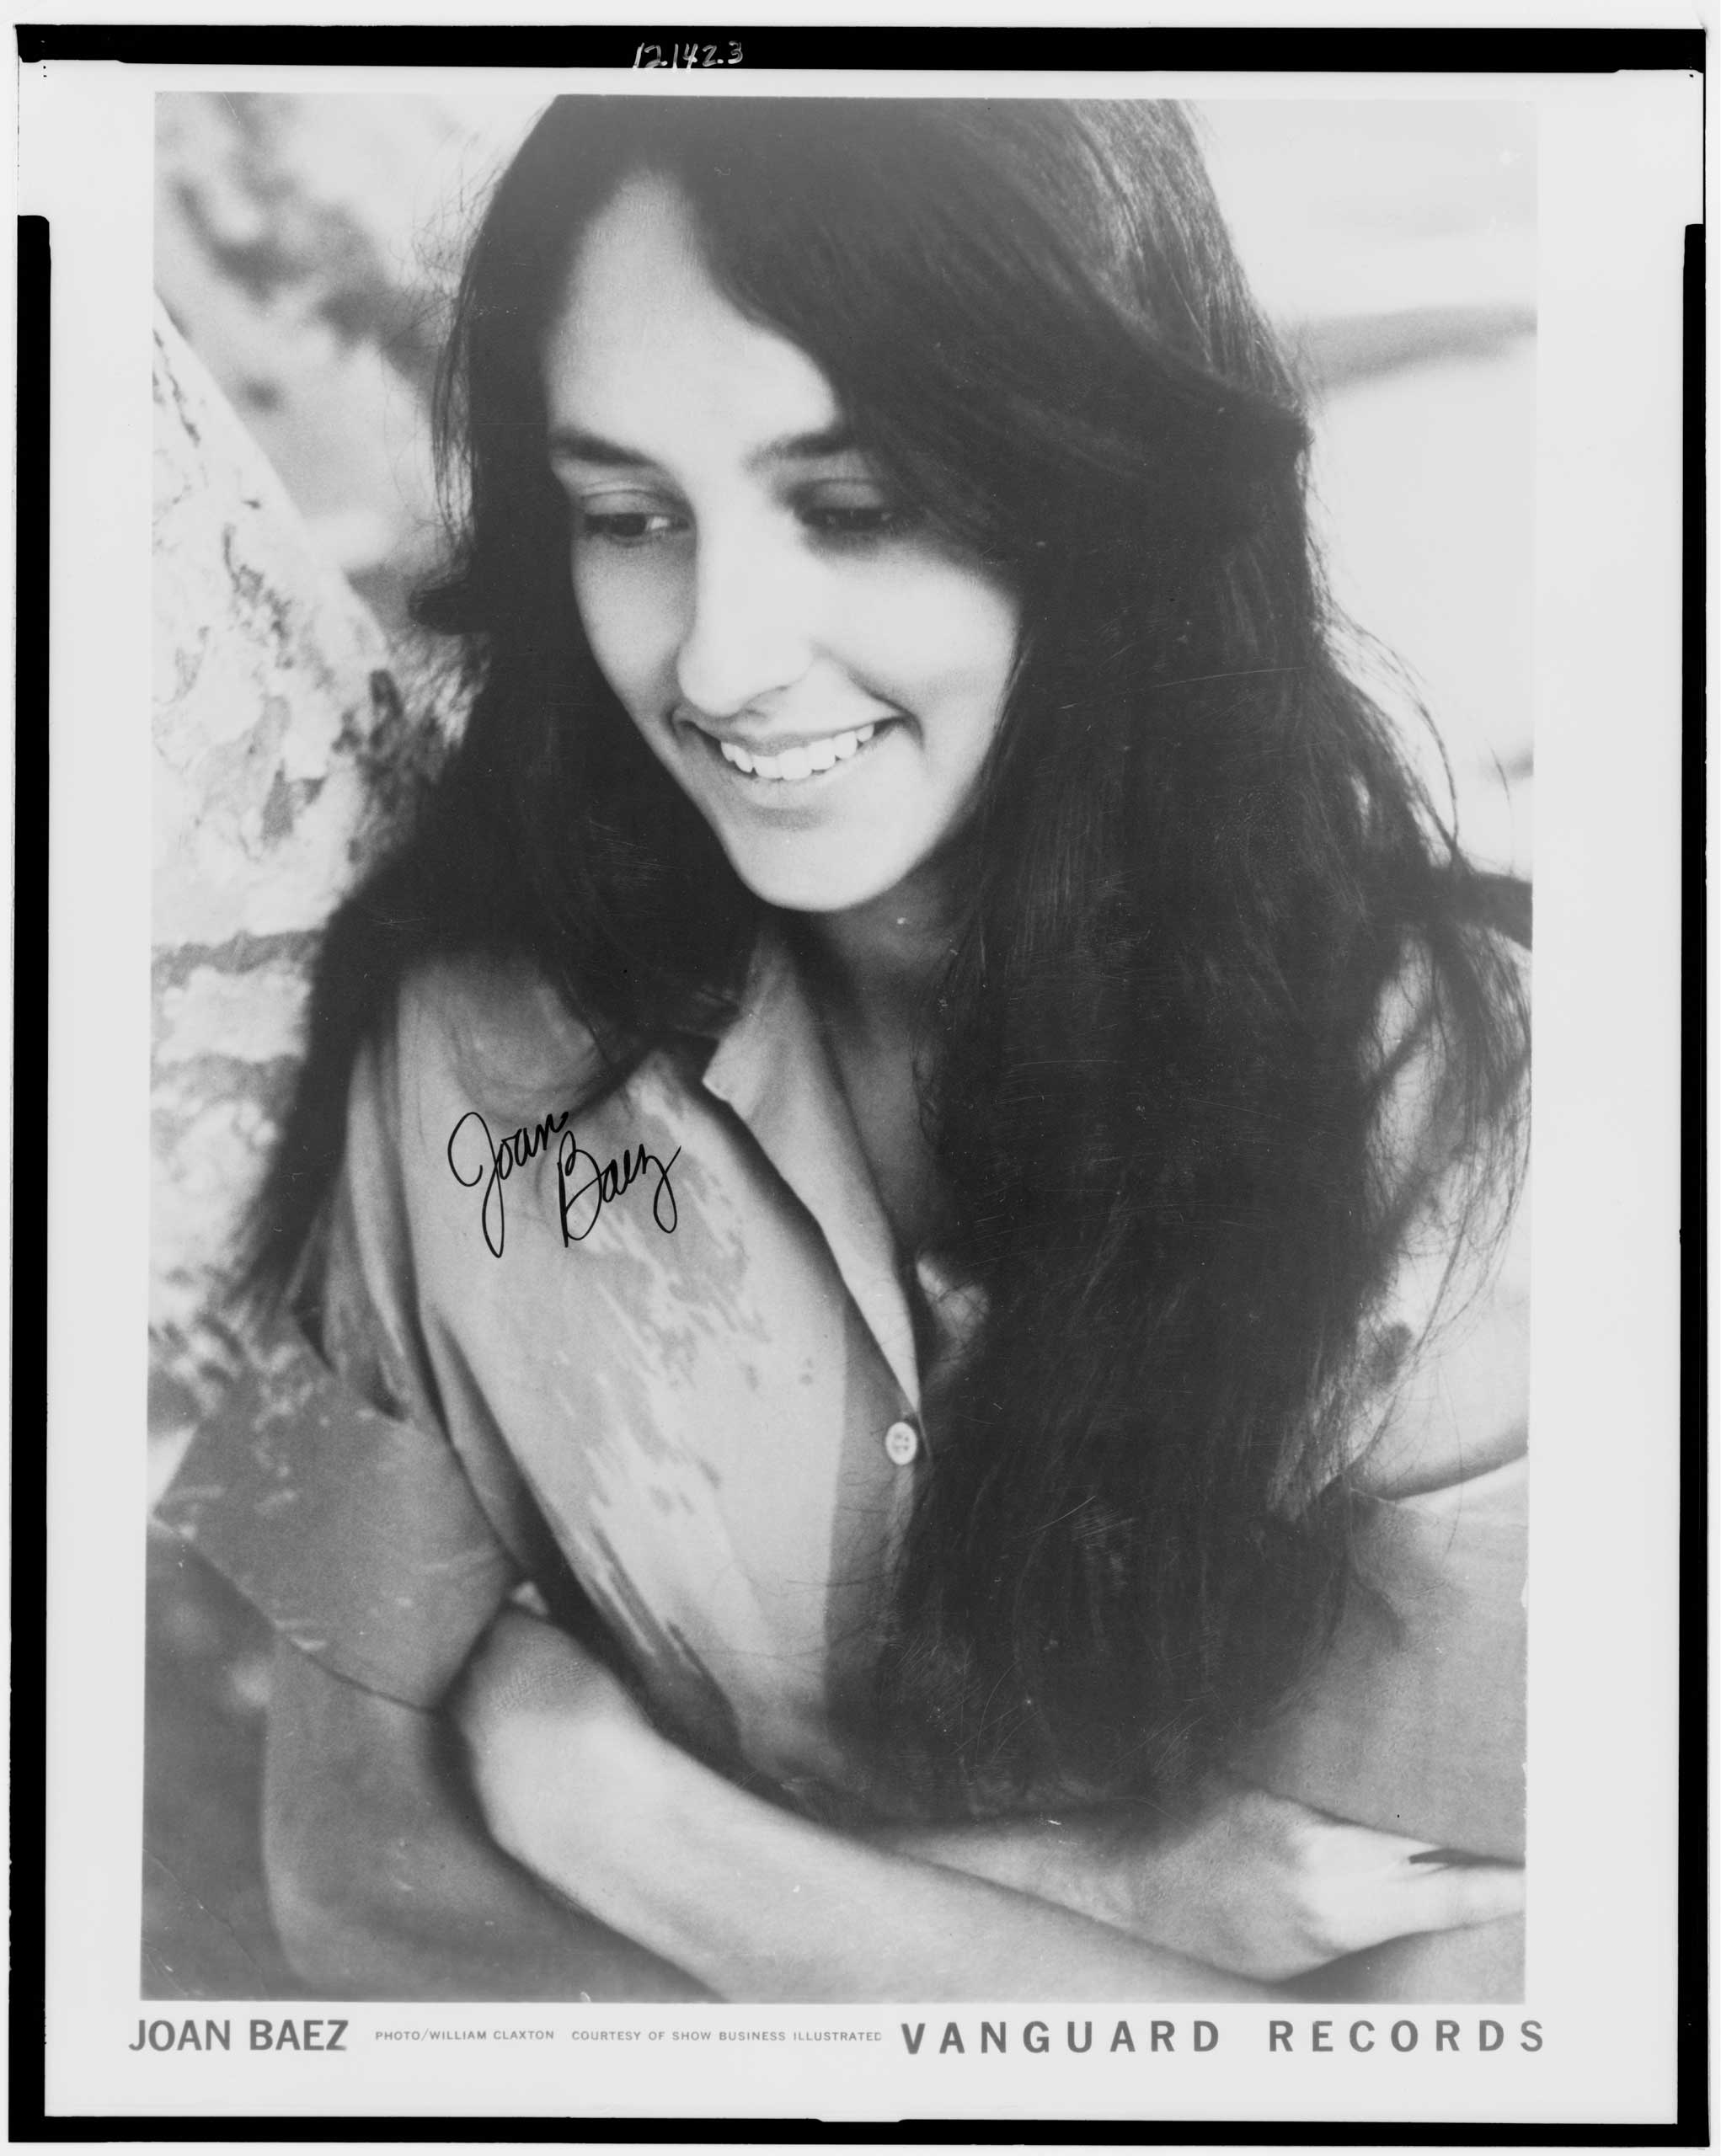 The self-titled debut album of folk singer Joan Baez was a key part of the folk revival movement in the 1960s. (William Claxton—Library of Congress)